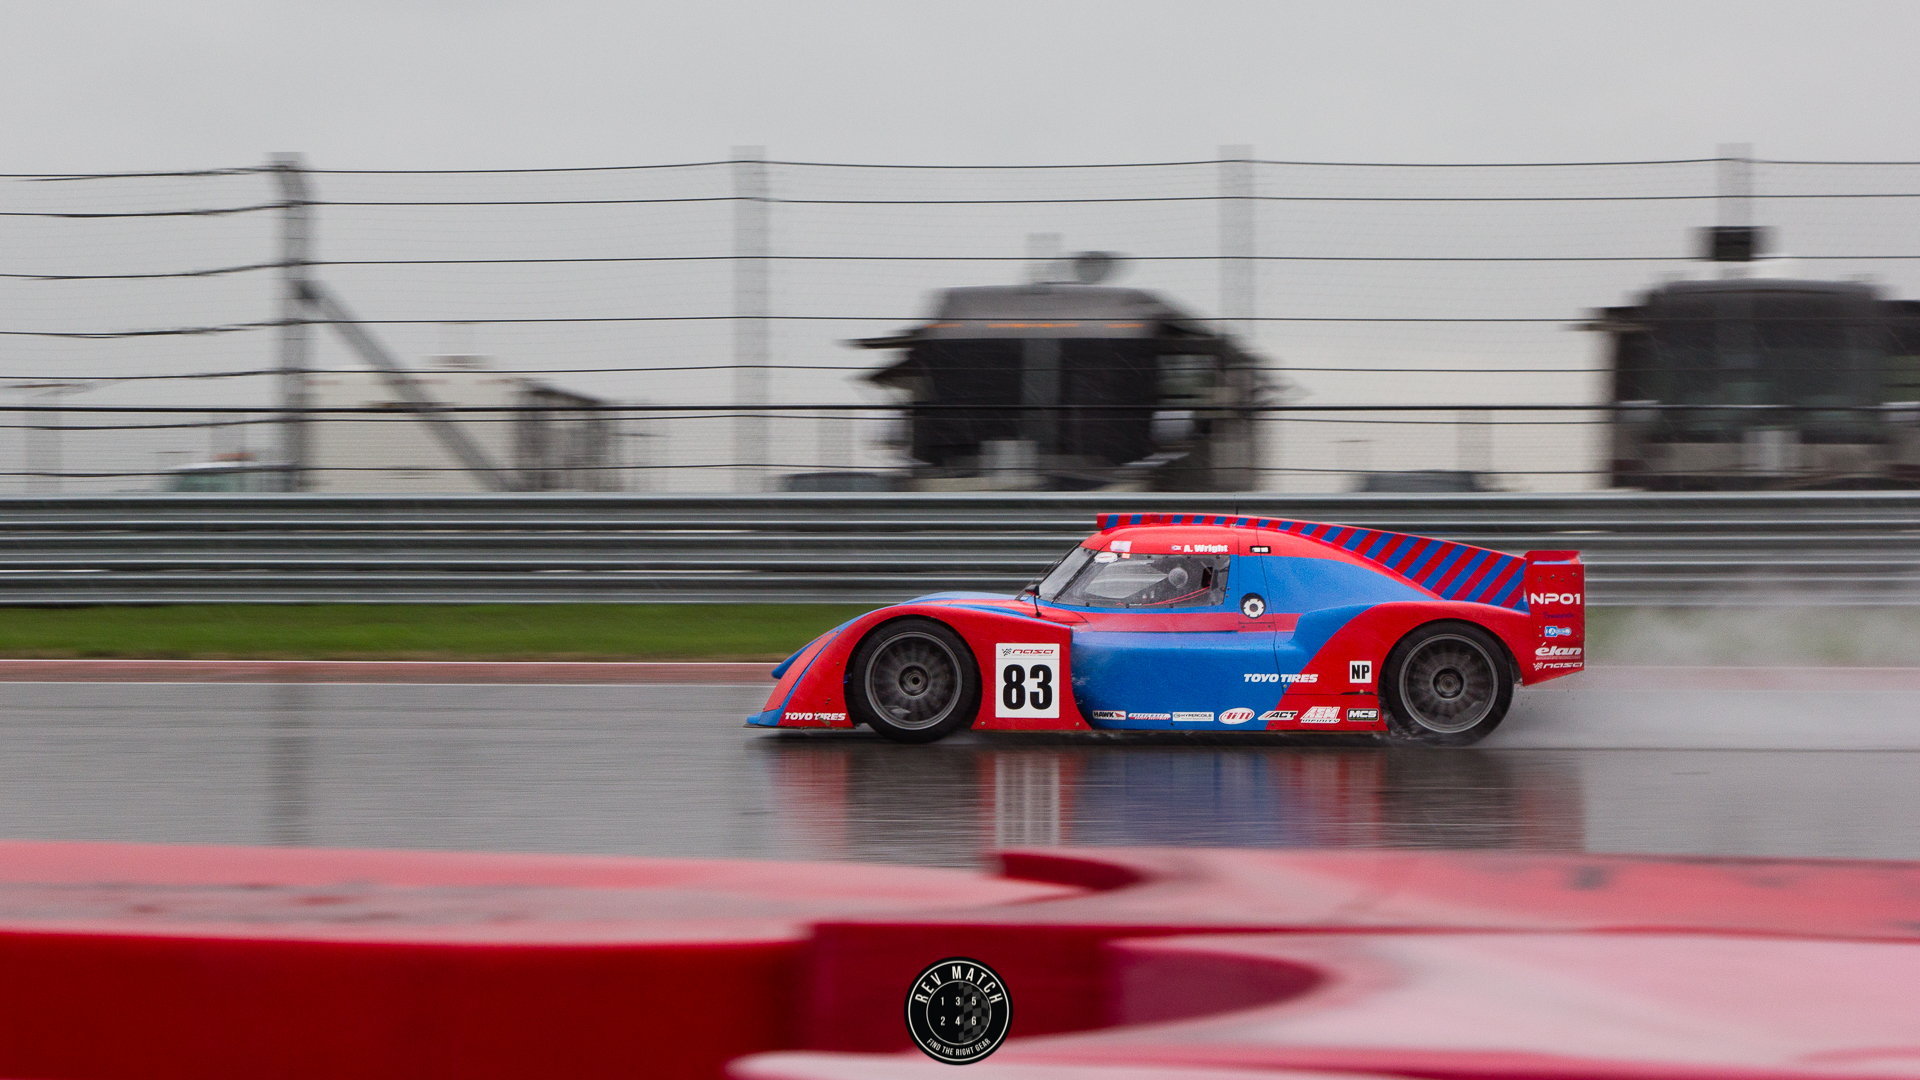 RMM x NASA at COTA 2018-182.jpg